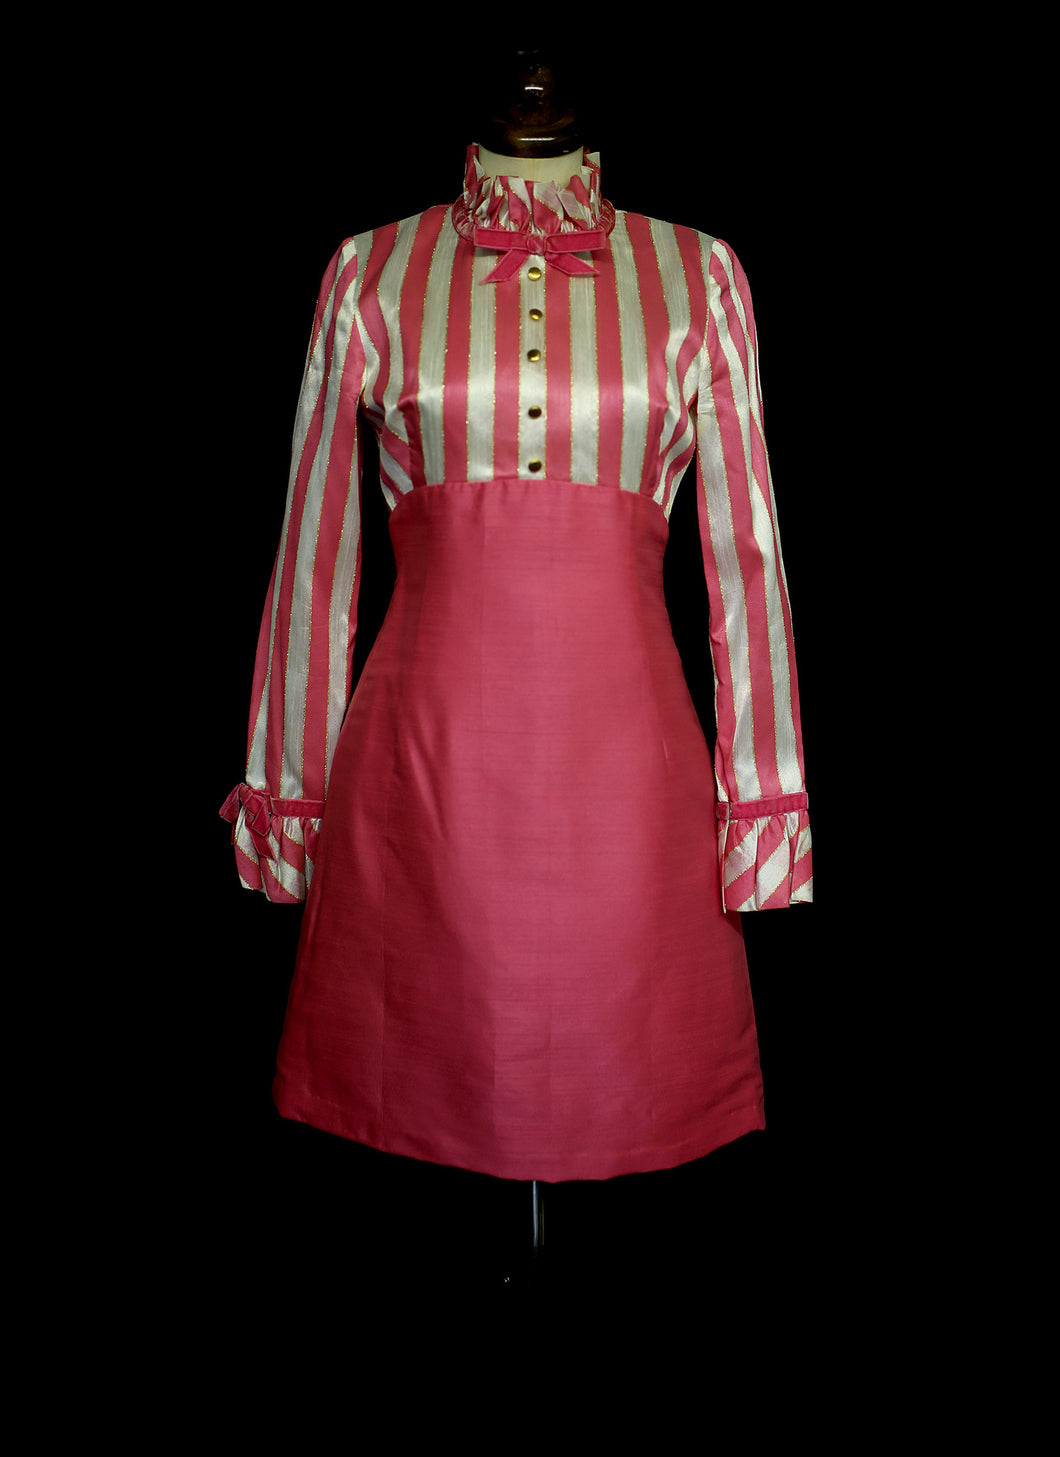 Vintage 1960s Pink Candystripe Mini Dress